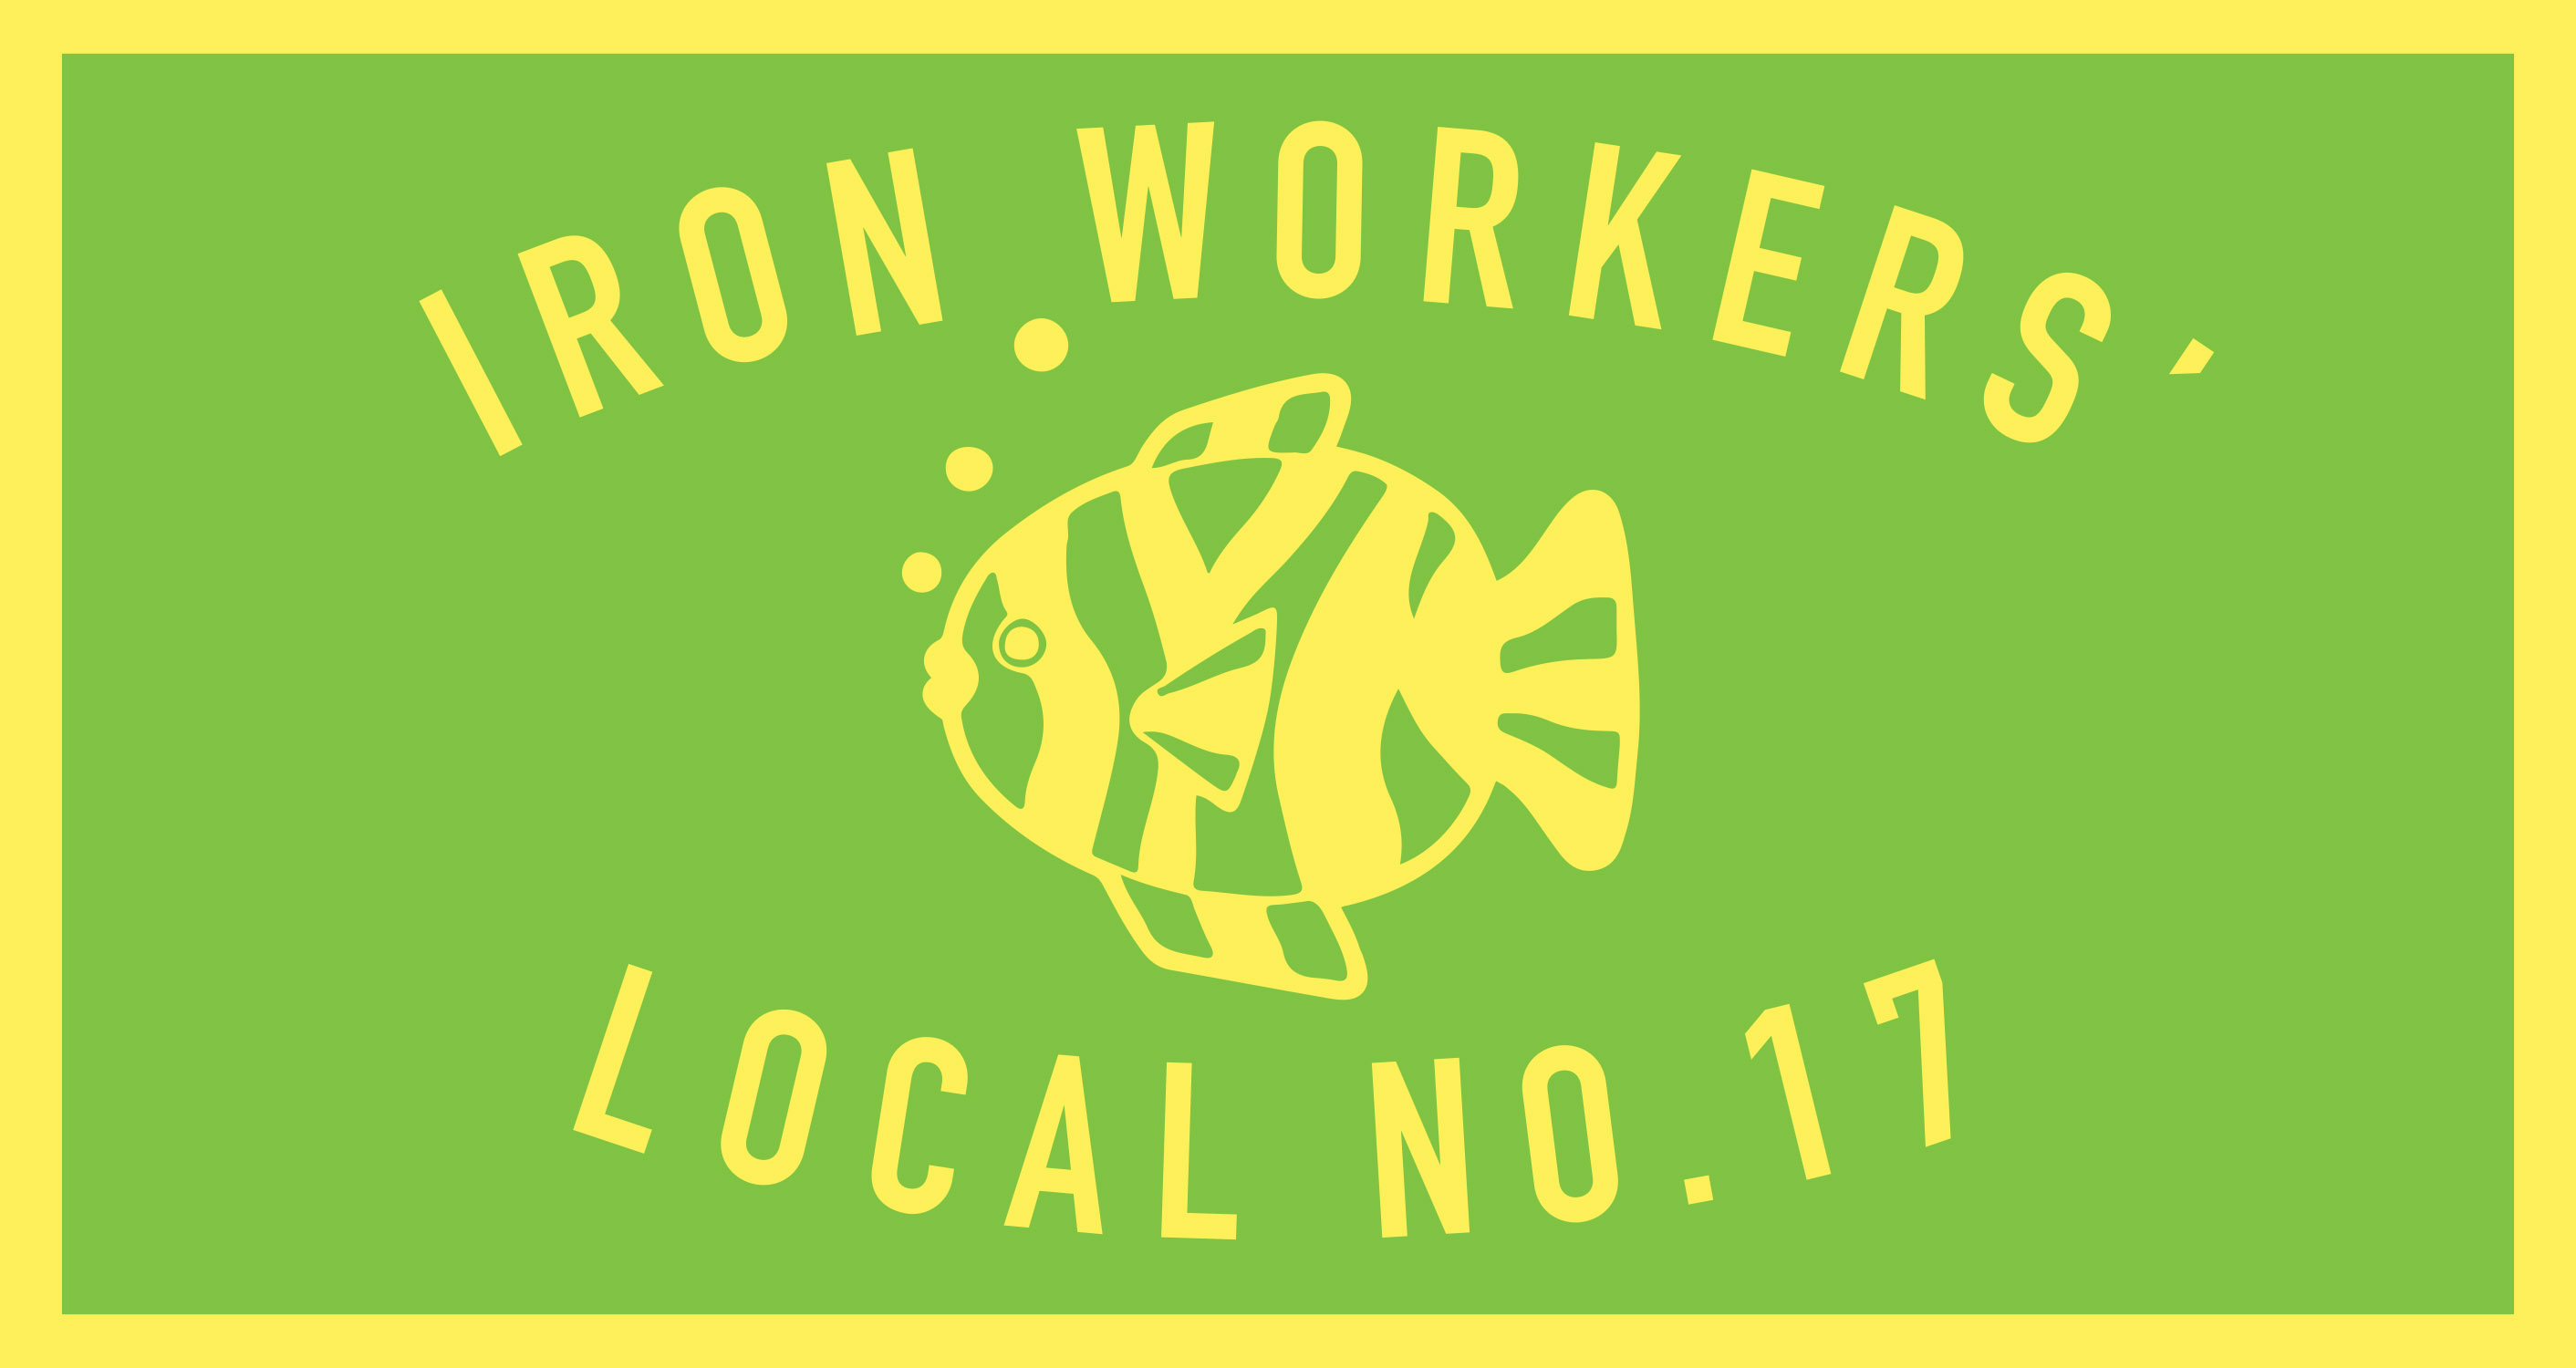 00525-IronWorkers_Local17-30x60_V4-PROOF